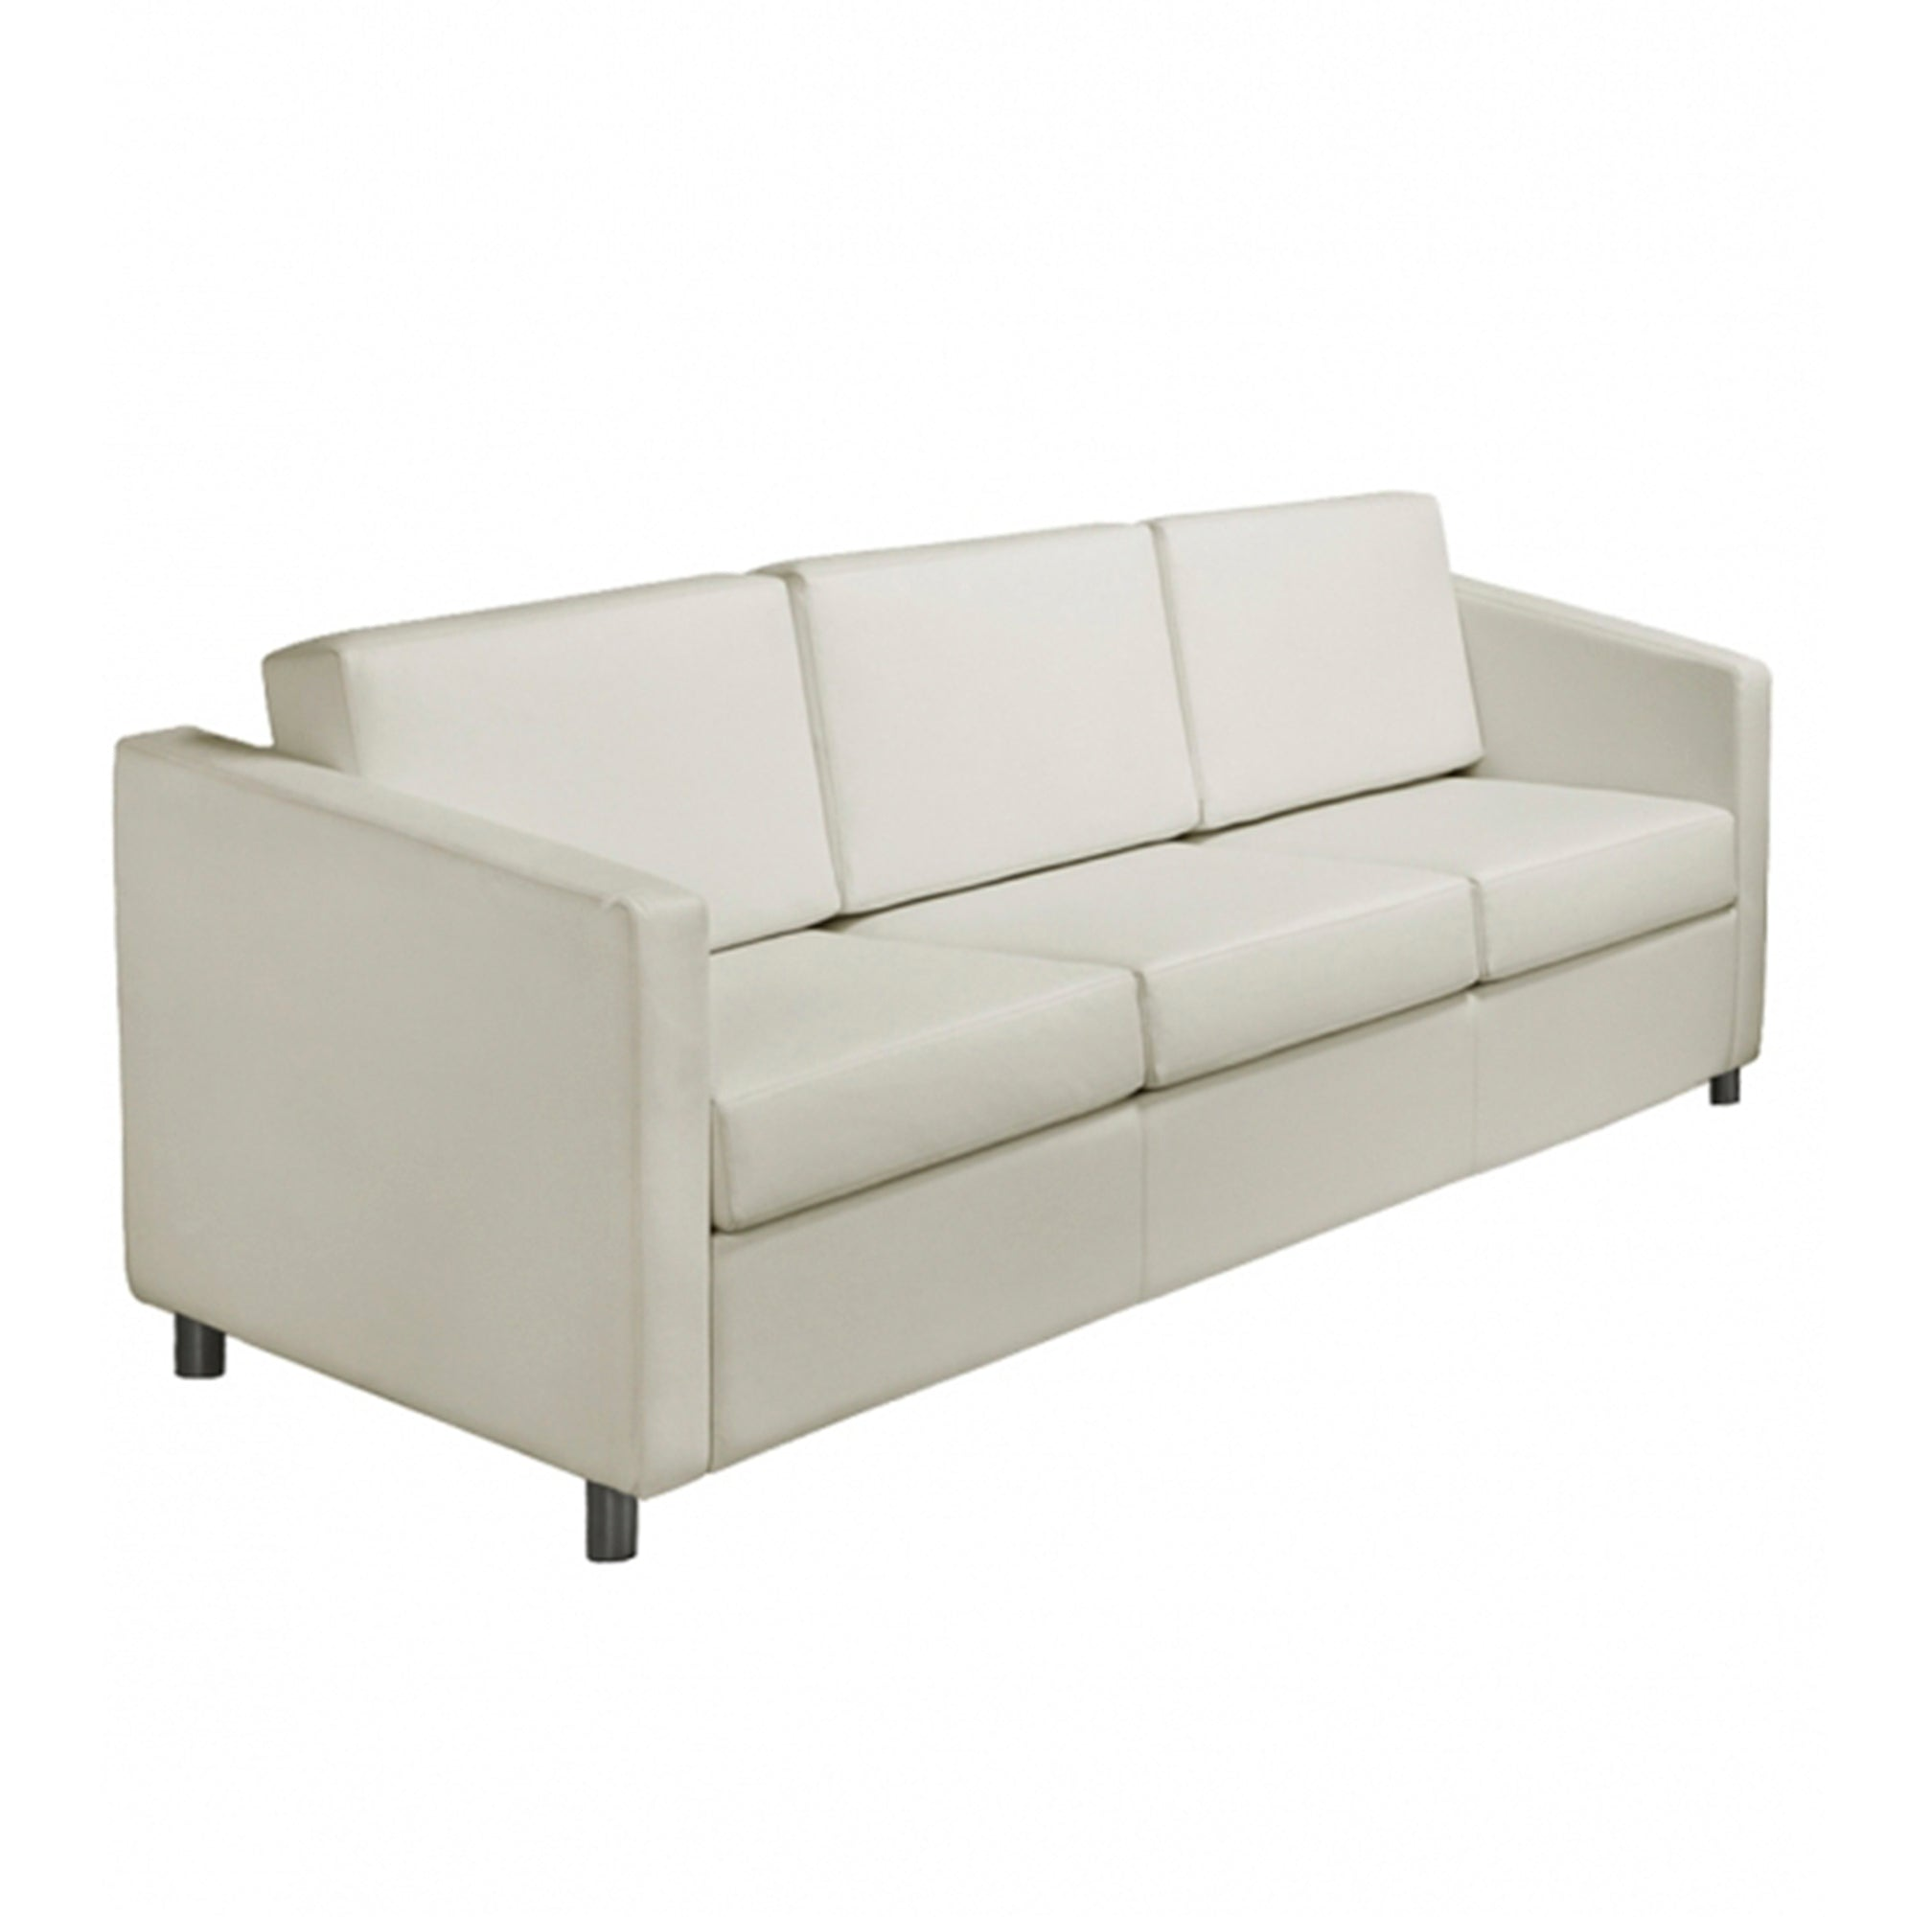 Danforth II Sofa